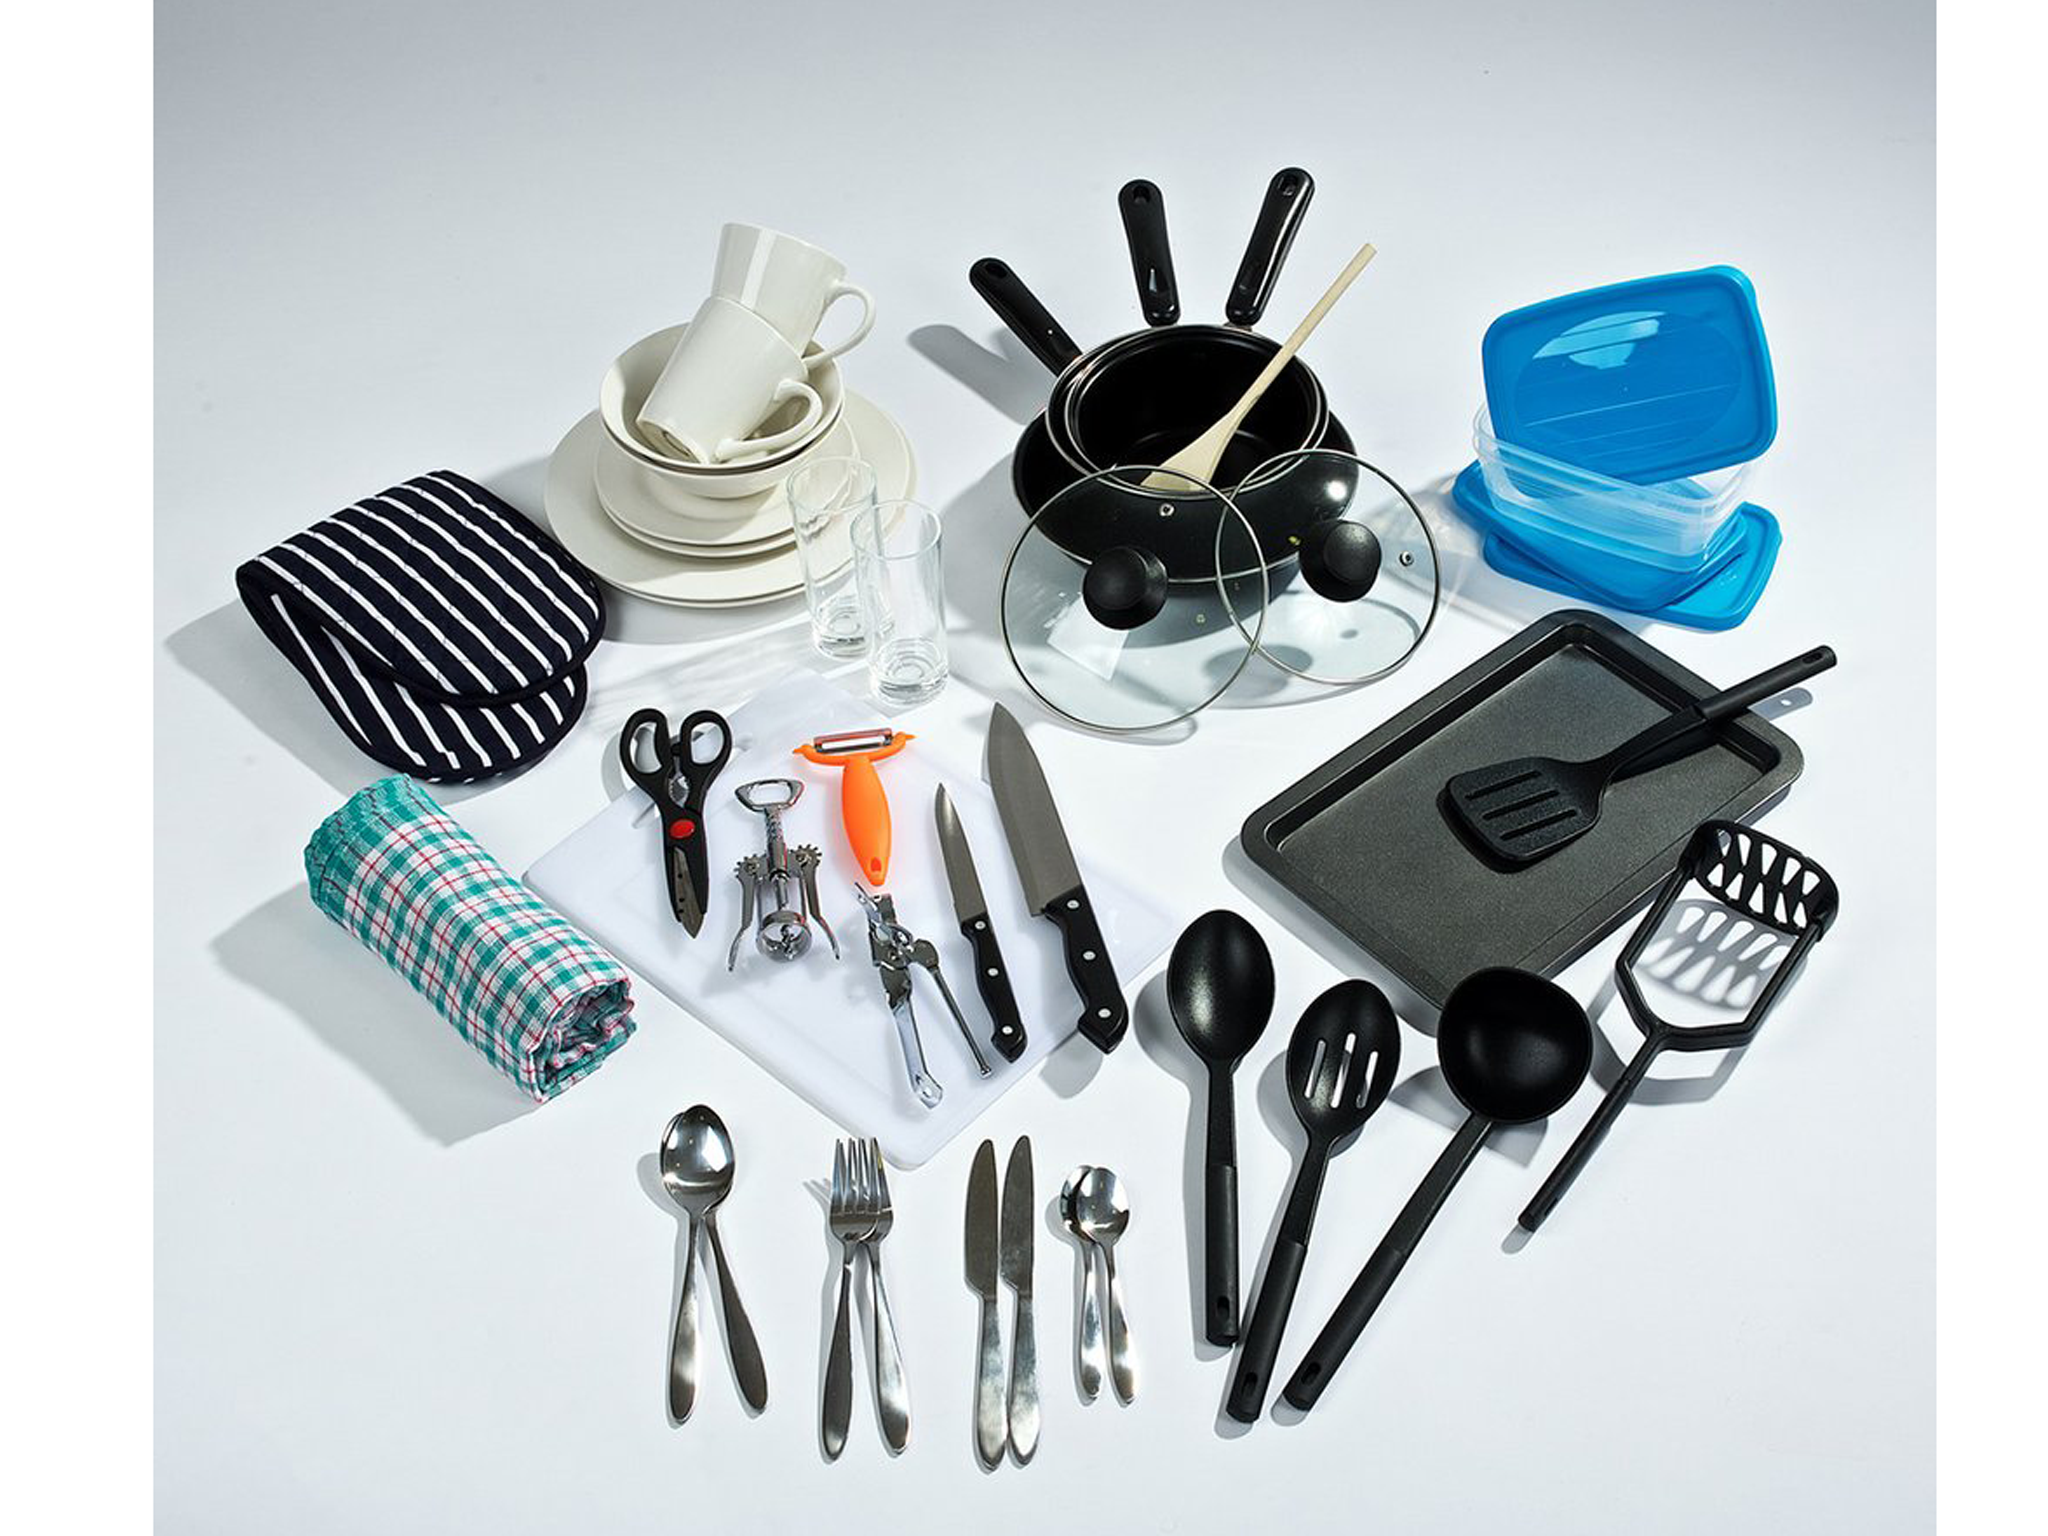 9 best kitchen starter sets for students the independent rh independent co uk Kitchen Sink Starter Kit Starter Kit IKEA